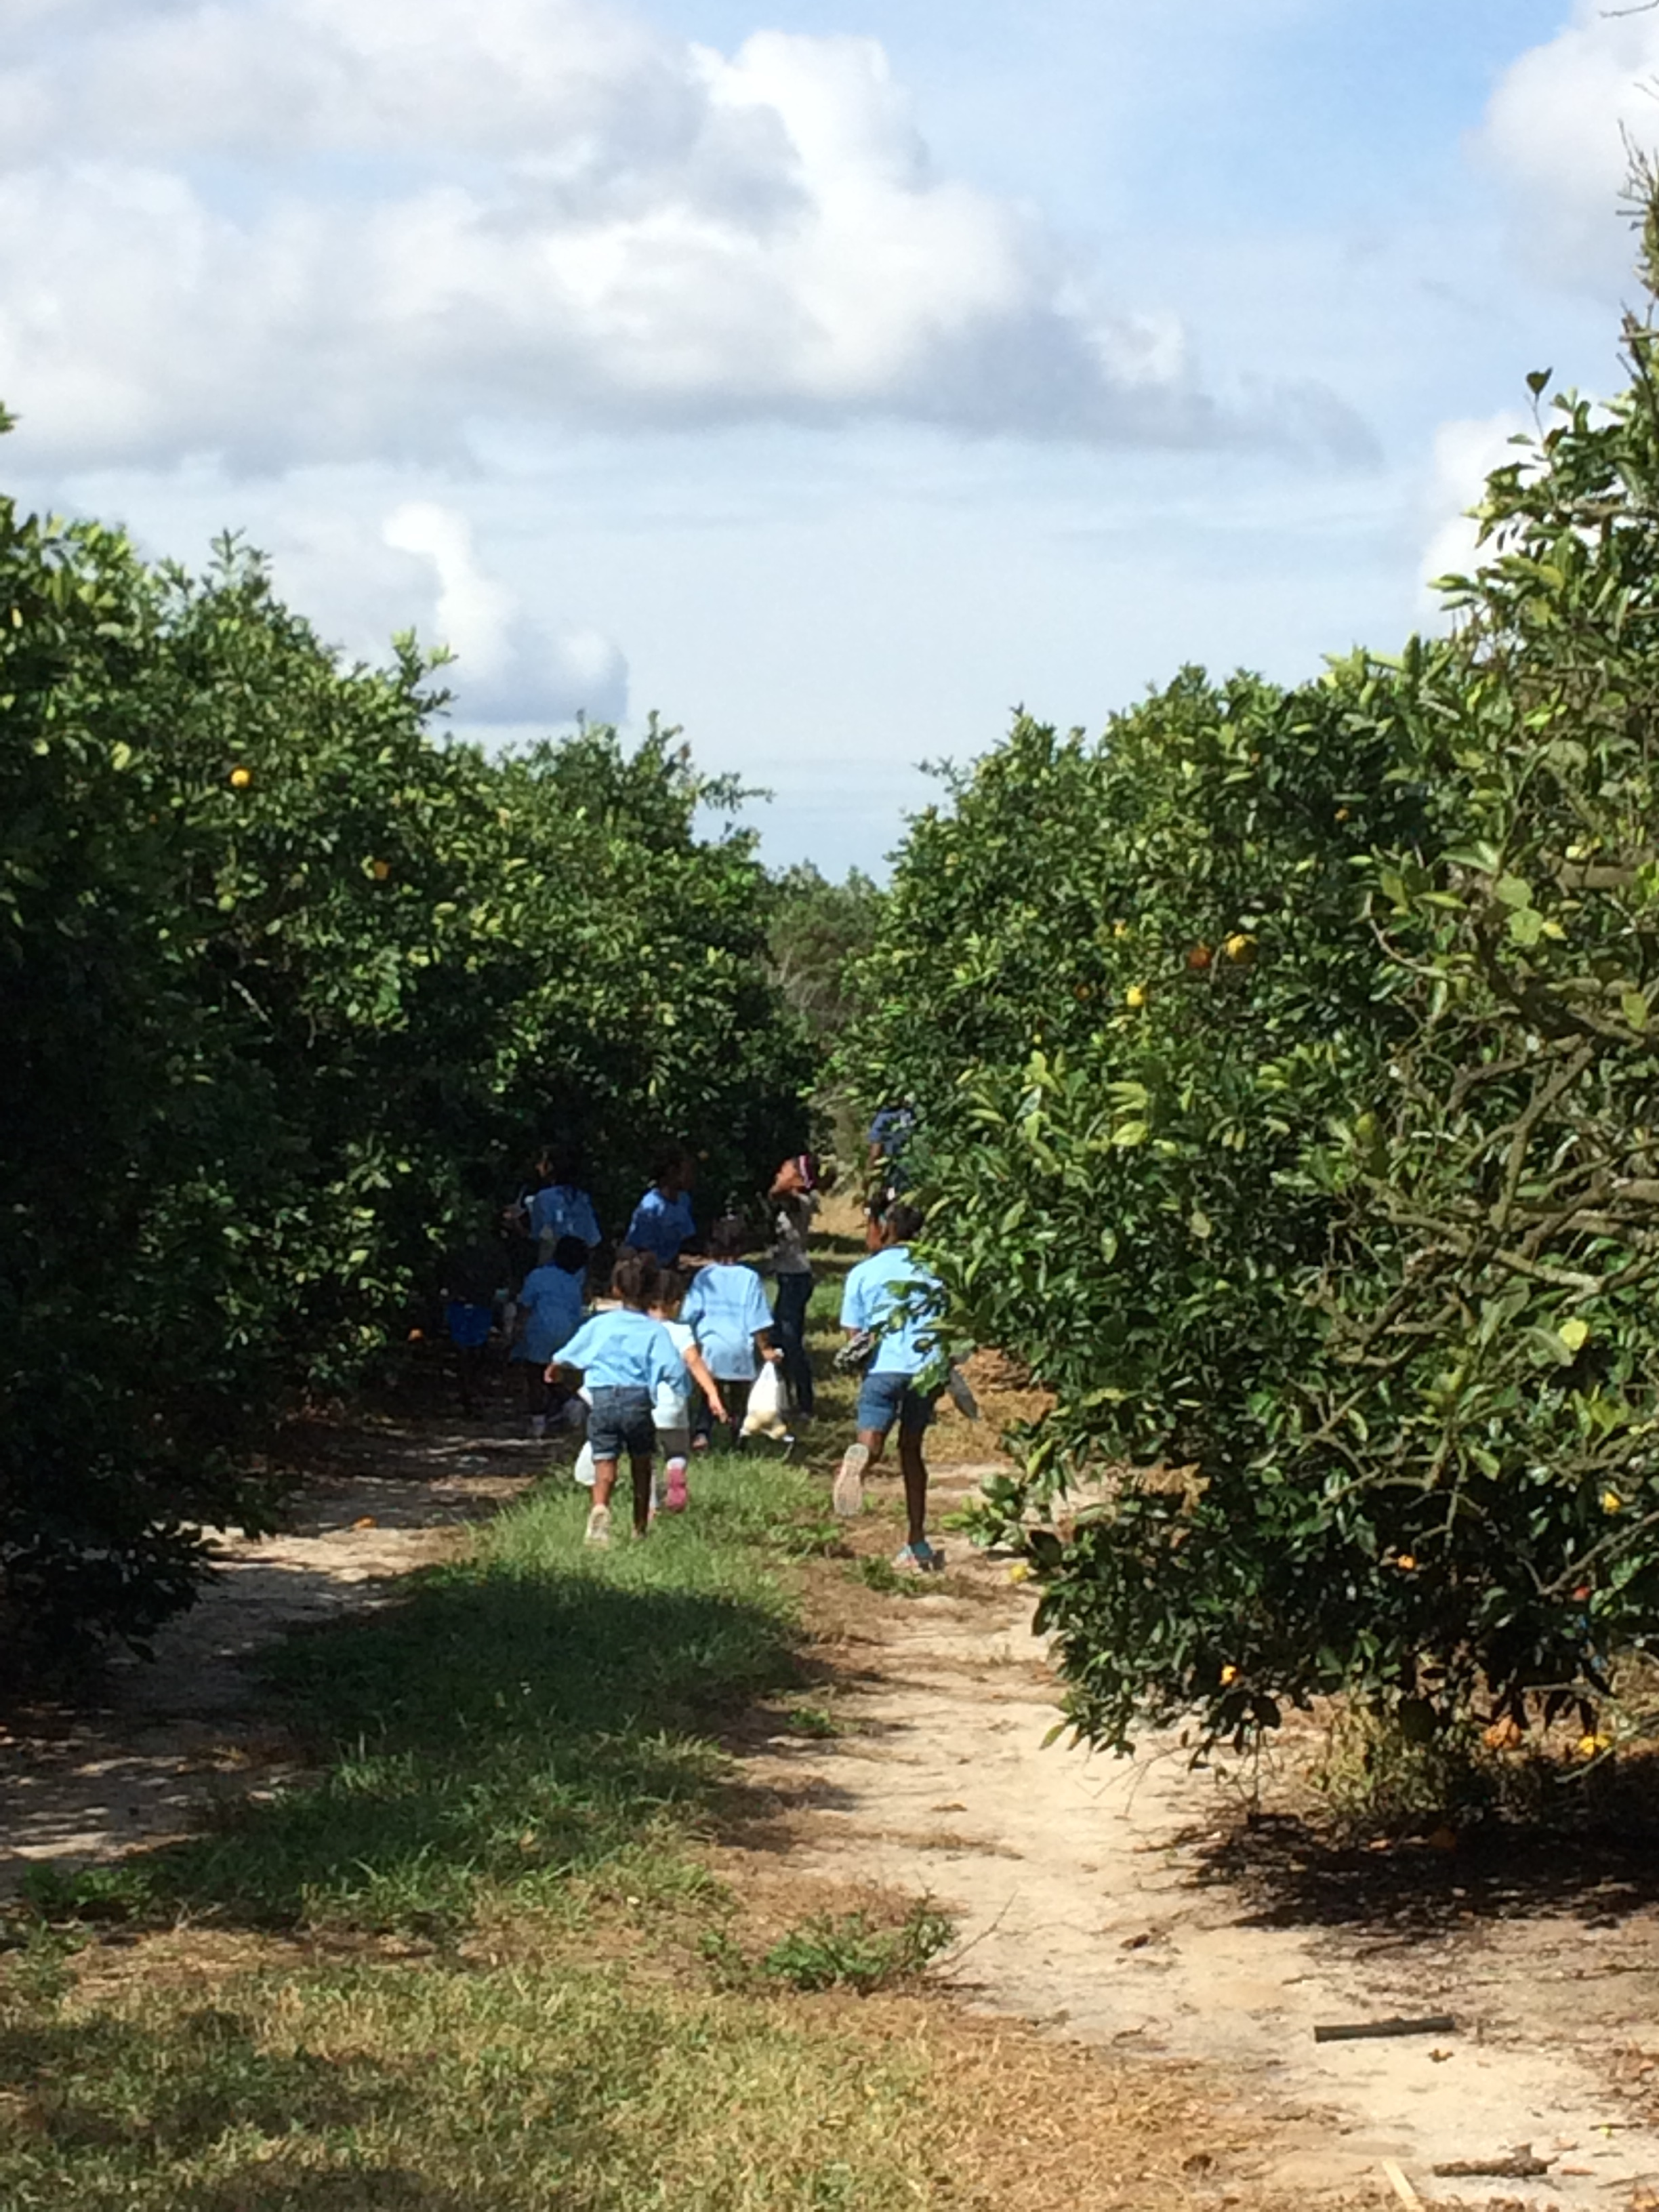 THE GIRLS ALL TOOK OFF IN EXCITEMENT, LOOKING FOR ORANGES IN THE GROVE. THIS EXCITEMENT WAS QUICKLY TEMPERED BY THE HEAT